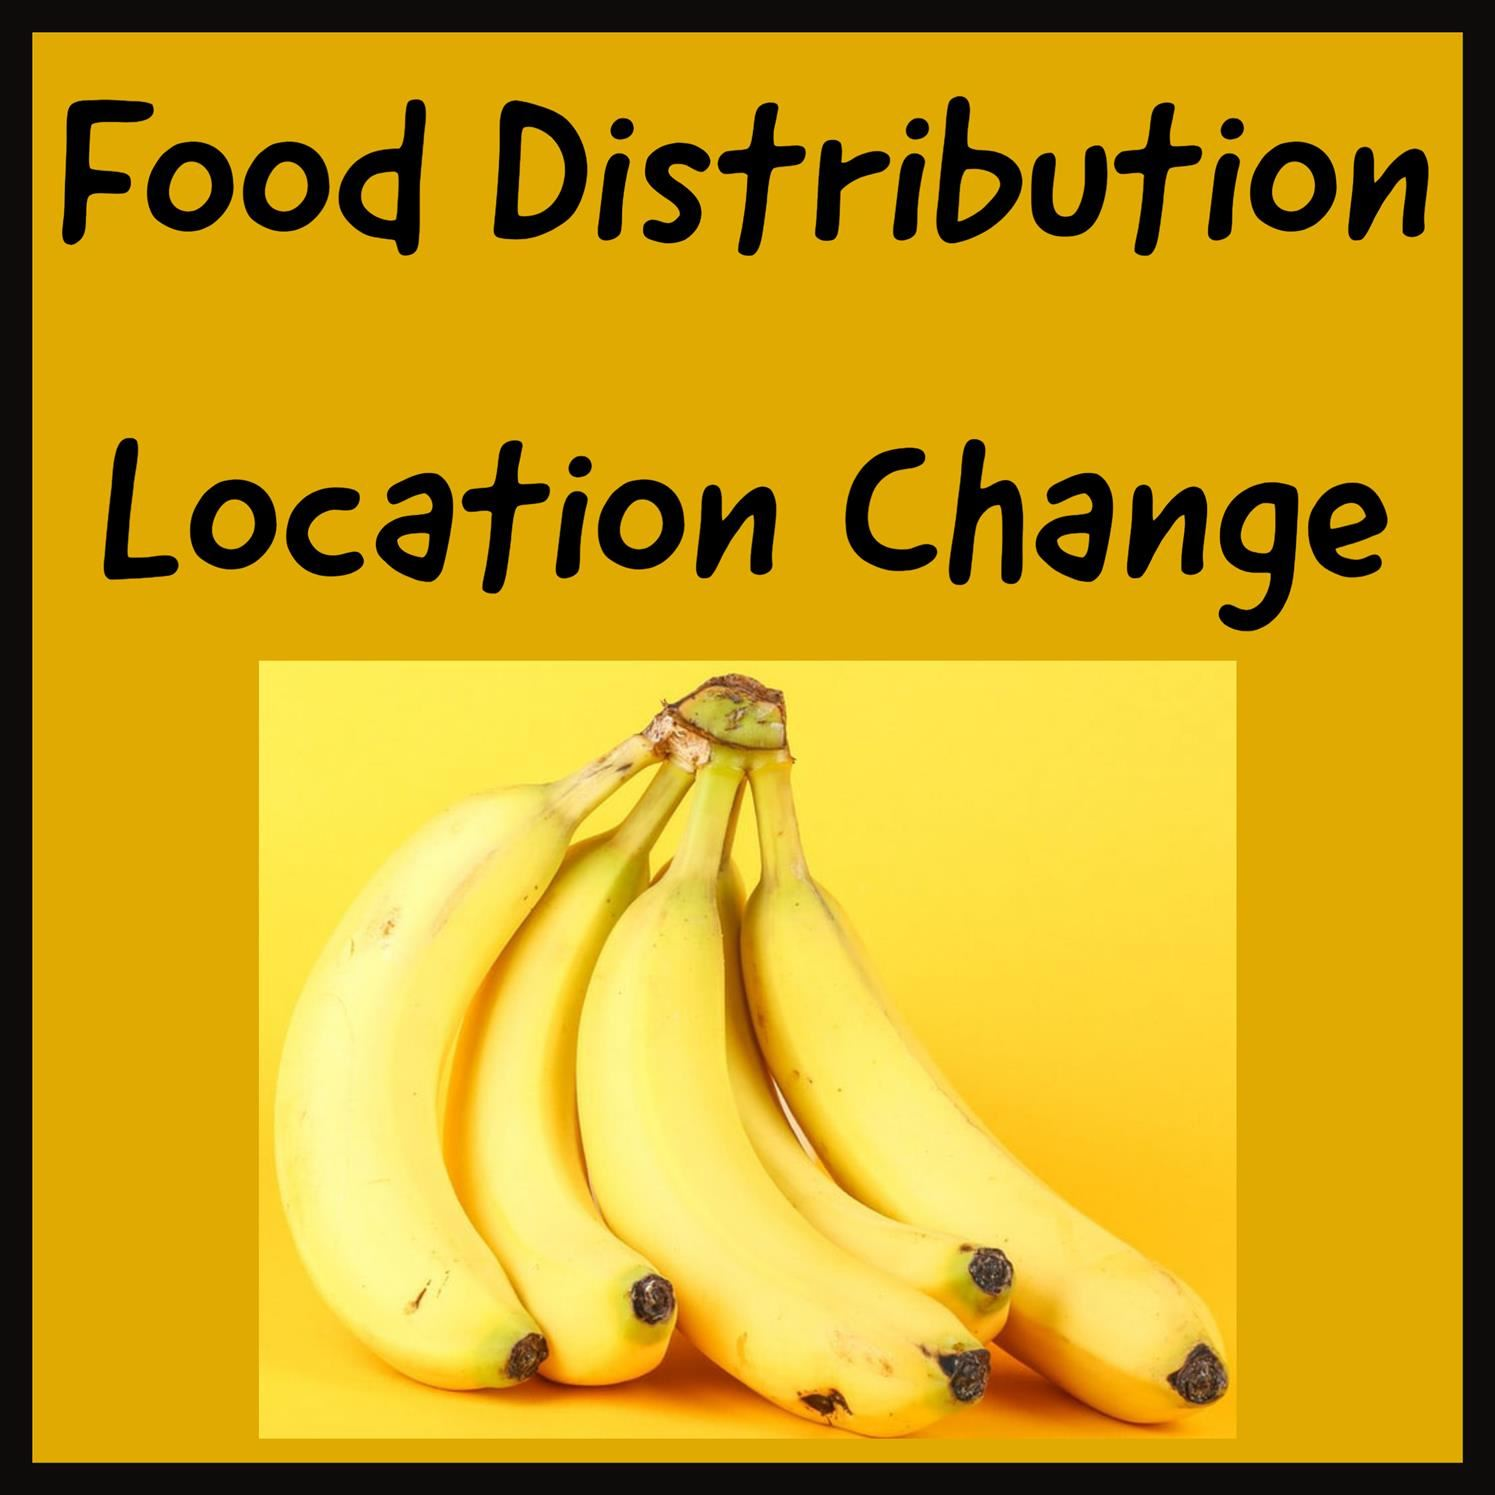 Food Distribution Location Has Changed!